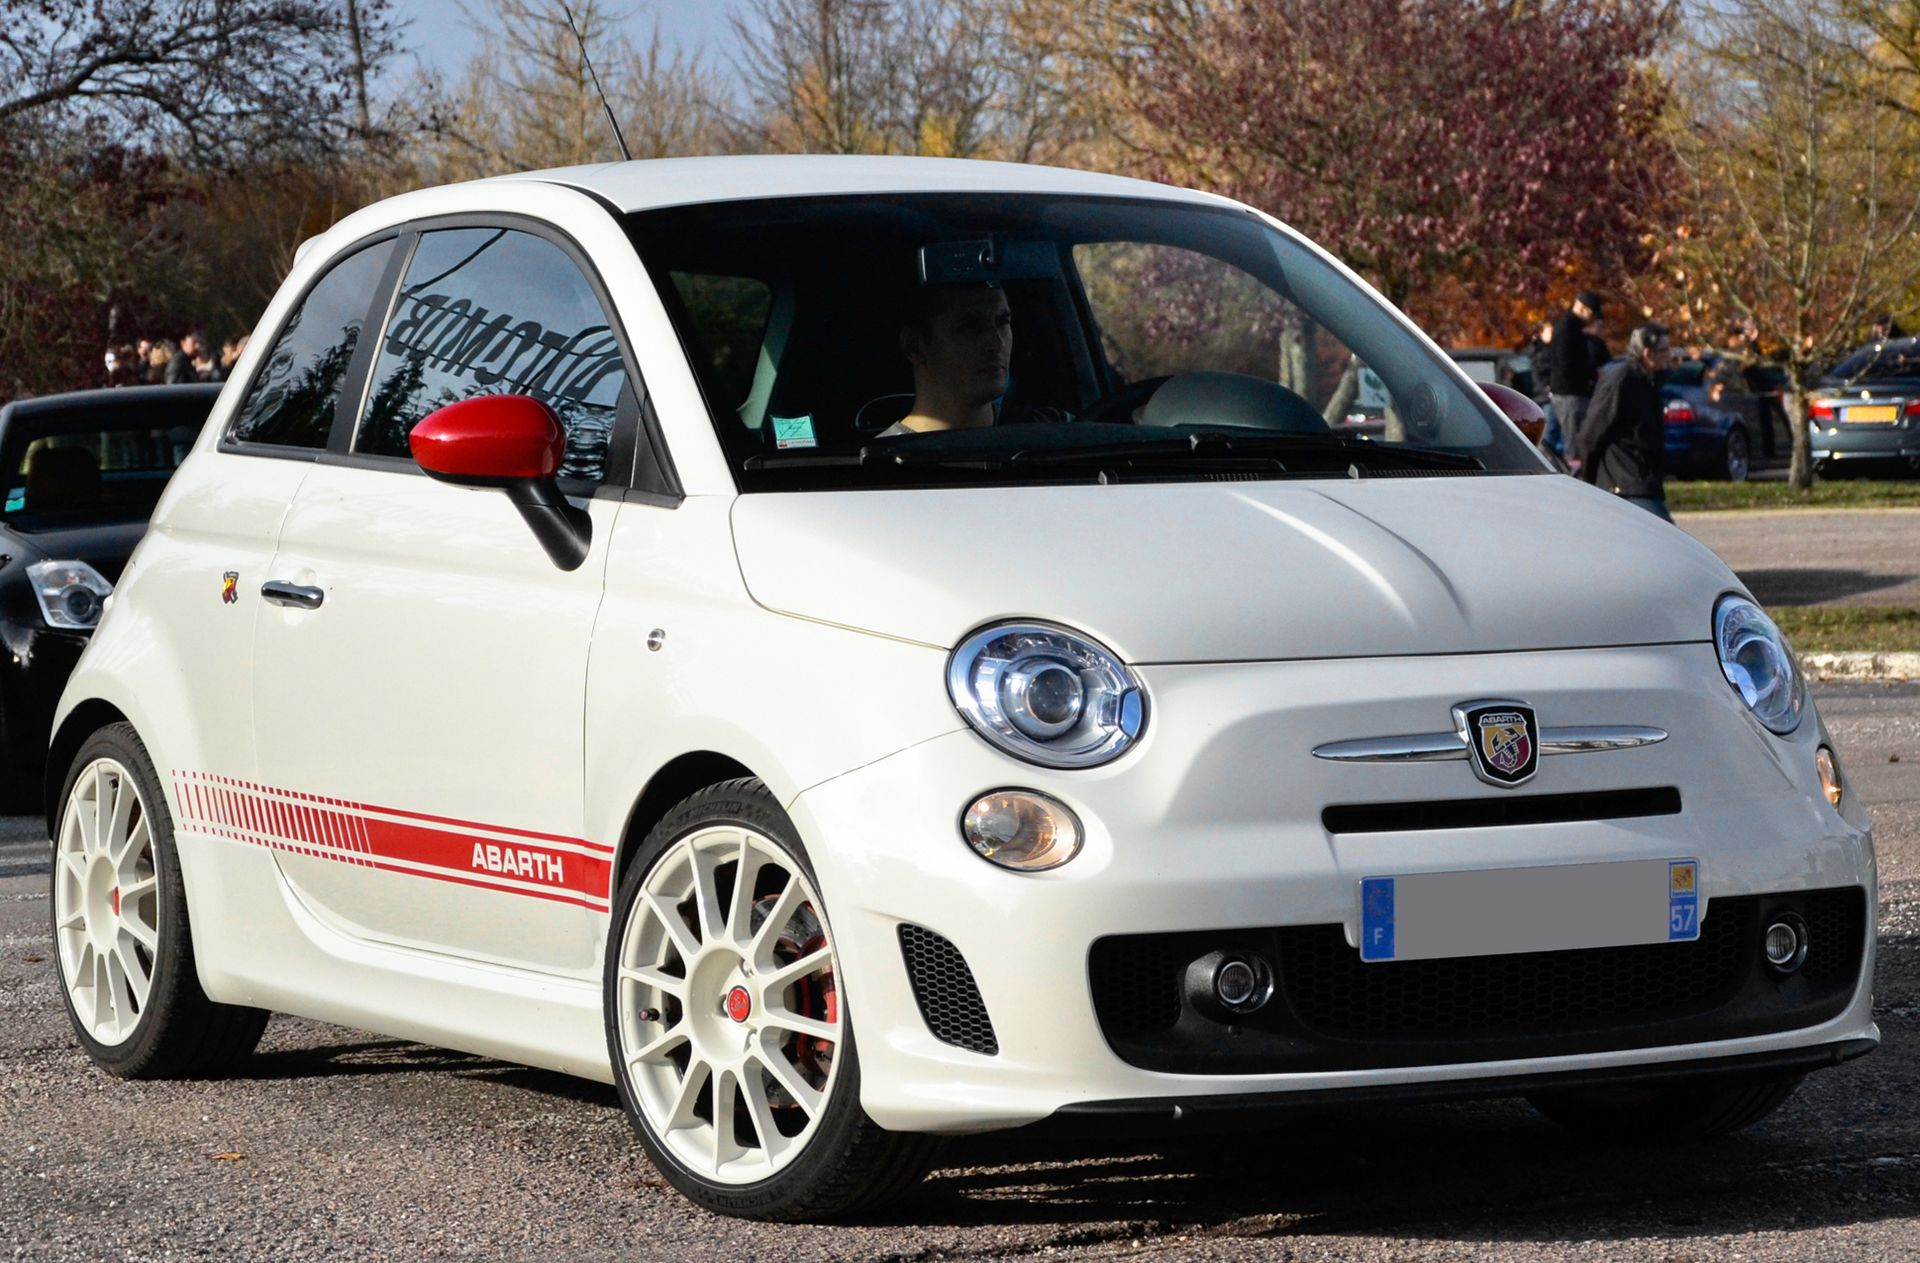 Fiat 500 Abarth - Flickr - Alexandre Prévot (2) (cropped).jpg